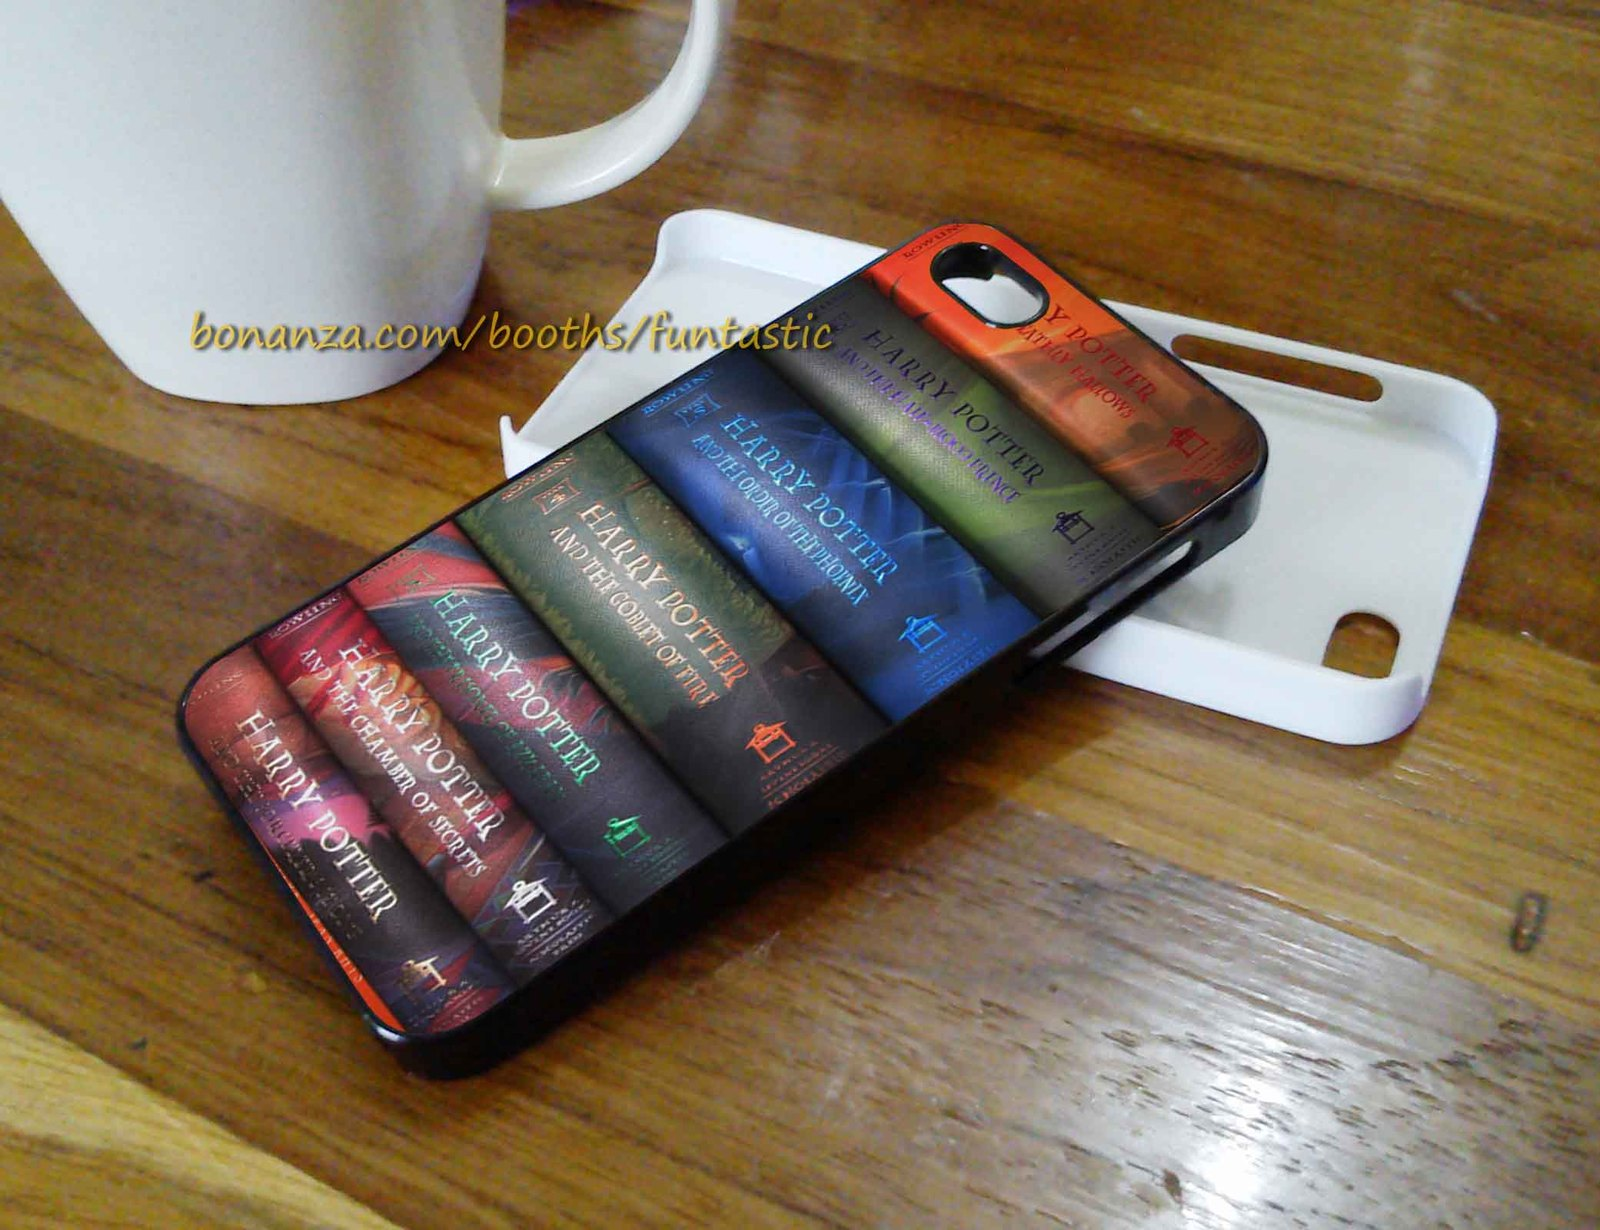 Harry Potter Book Cover Phone Case : Harry potter books phone case iphone c s